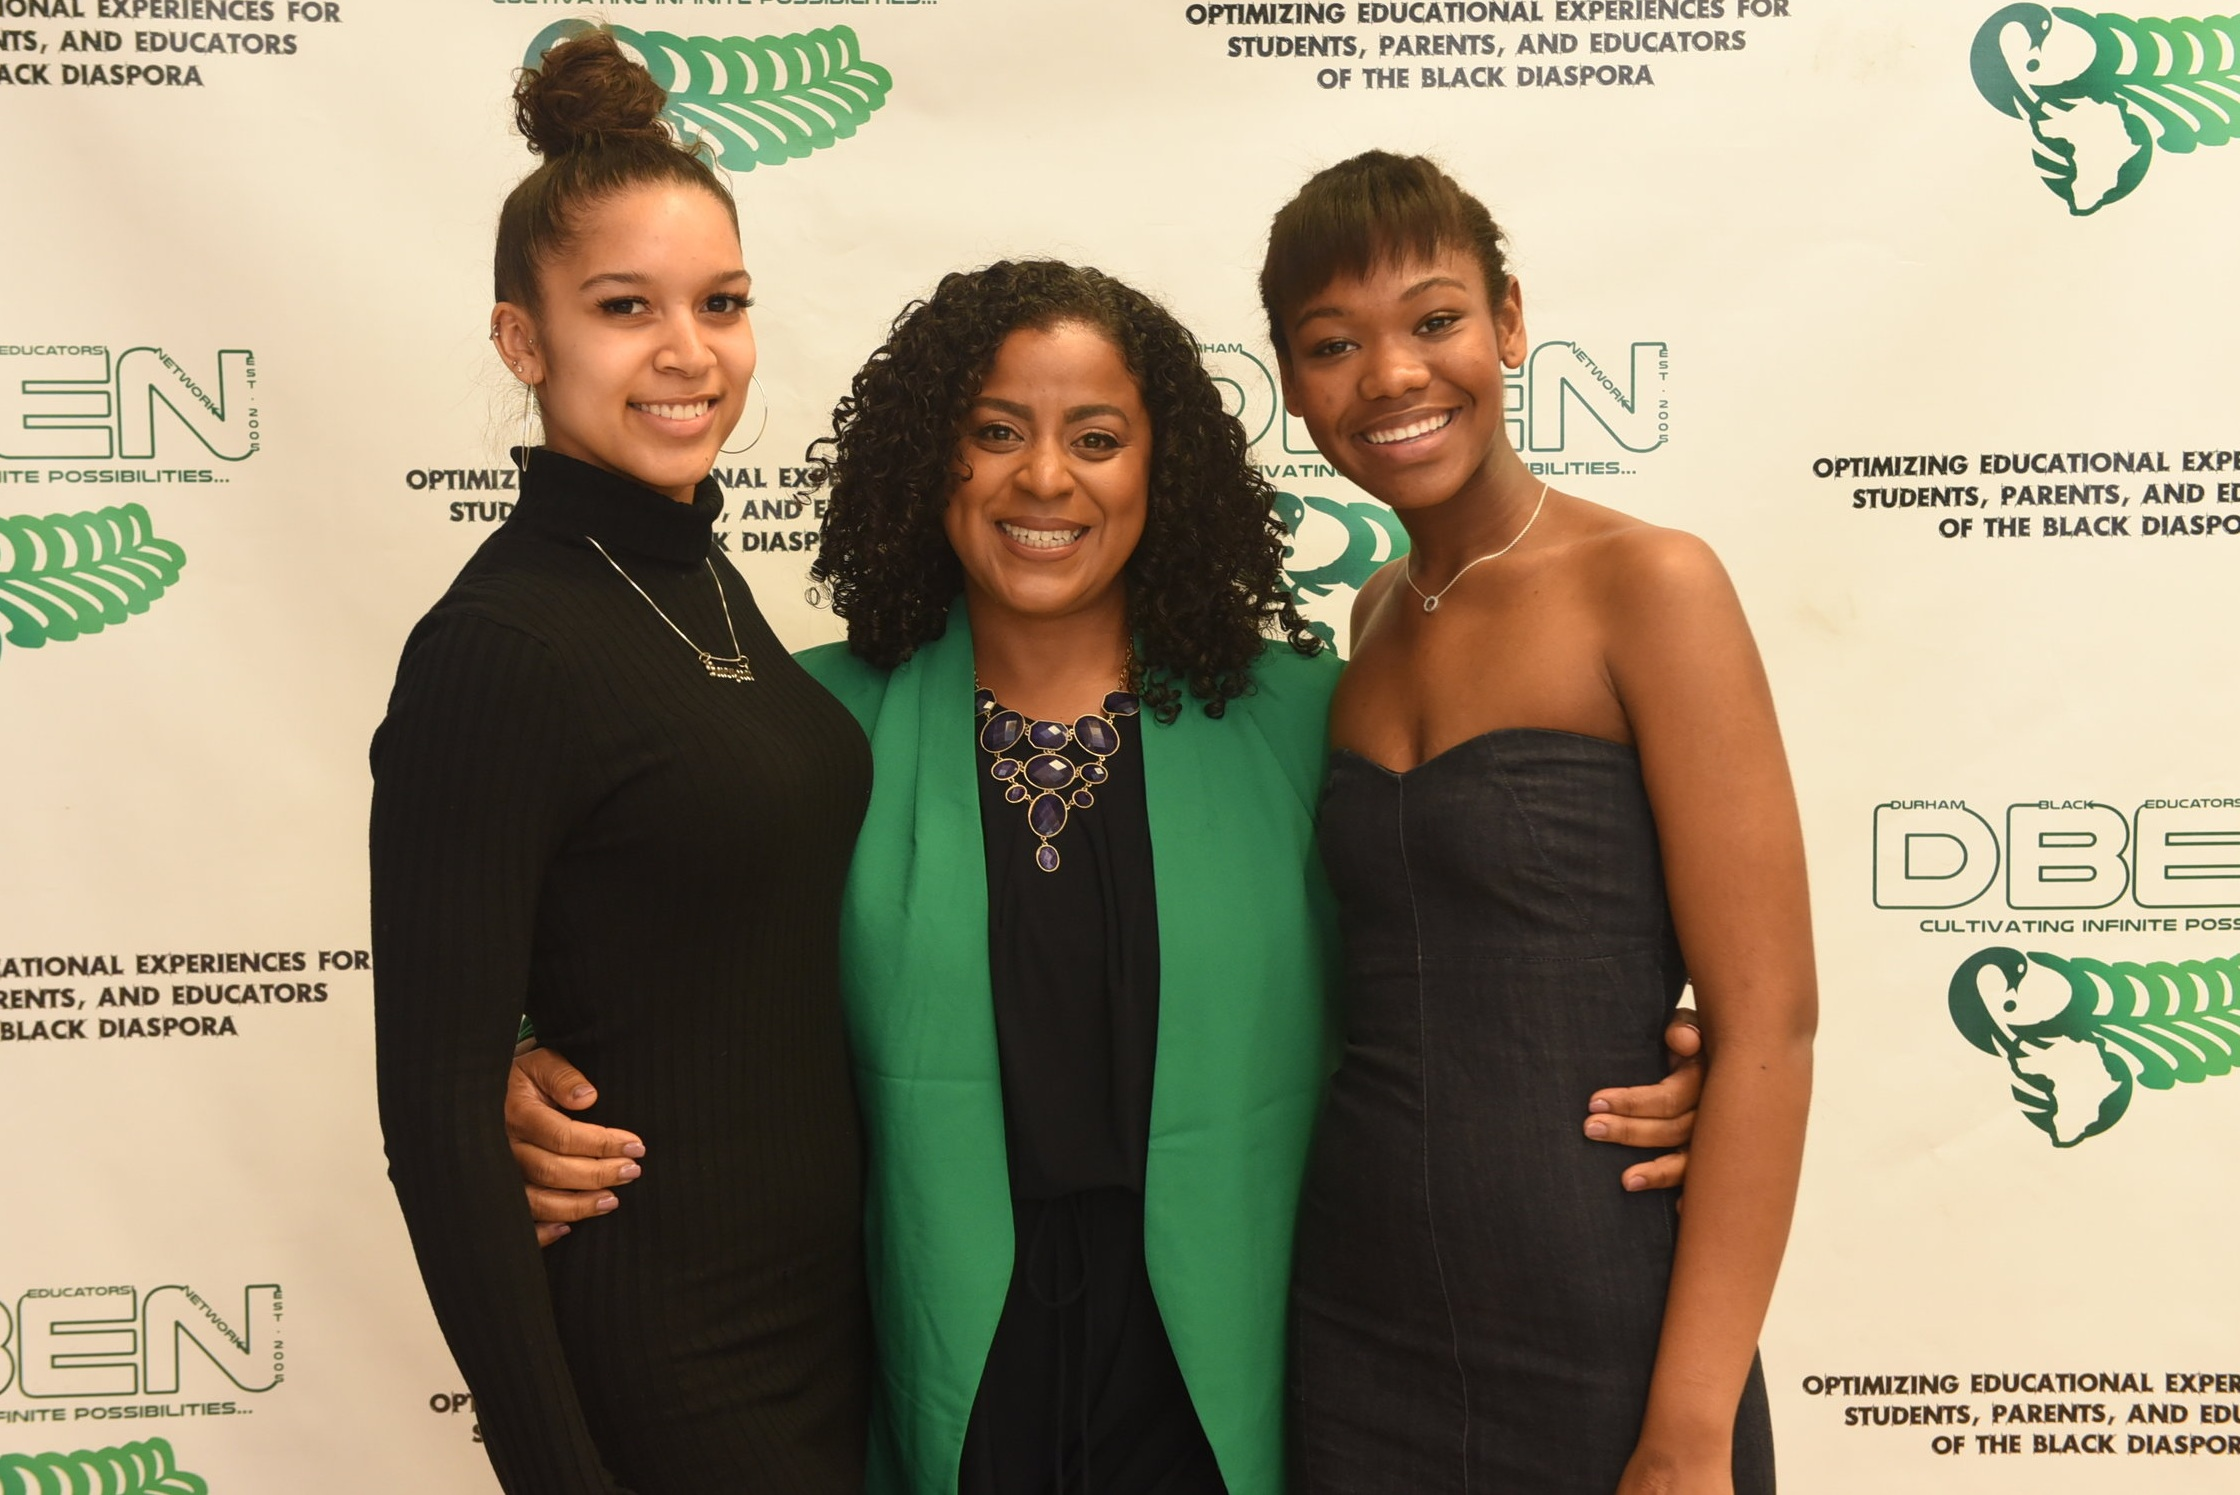 Leiza Keizer (c) presented scholarships to Racquel Anderson (l) & Daveisha Francis